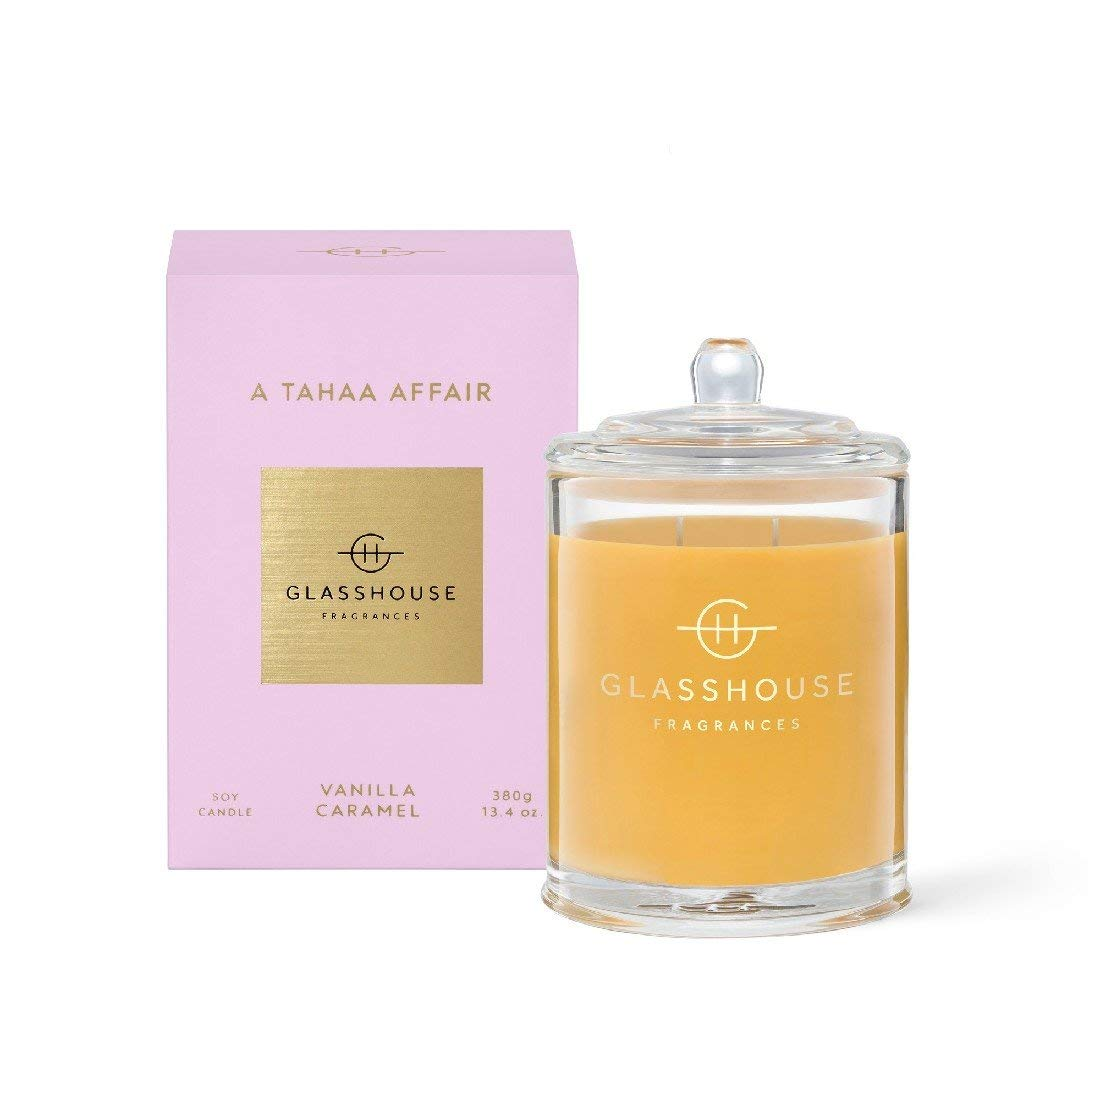 380g Candle - A TAHAA AFFAIR By Glasshouse